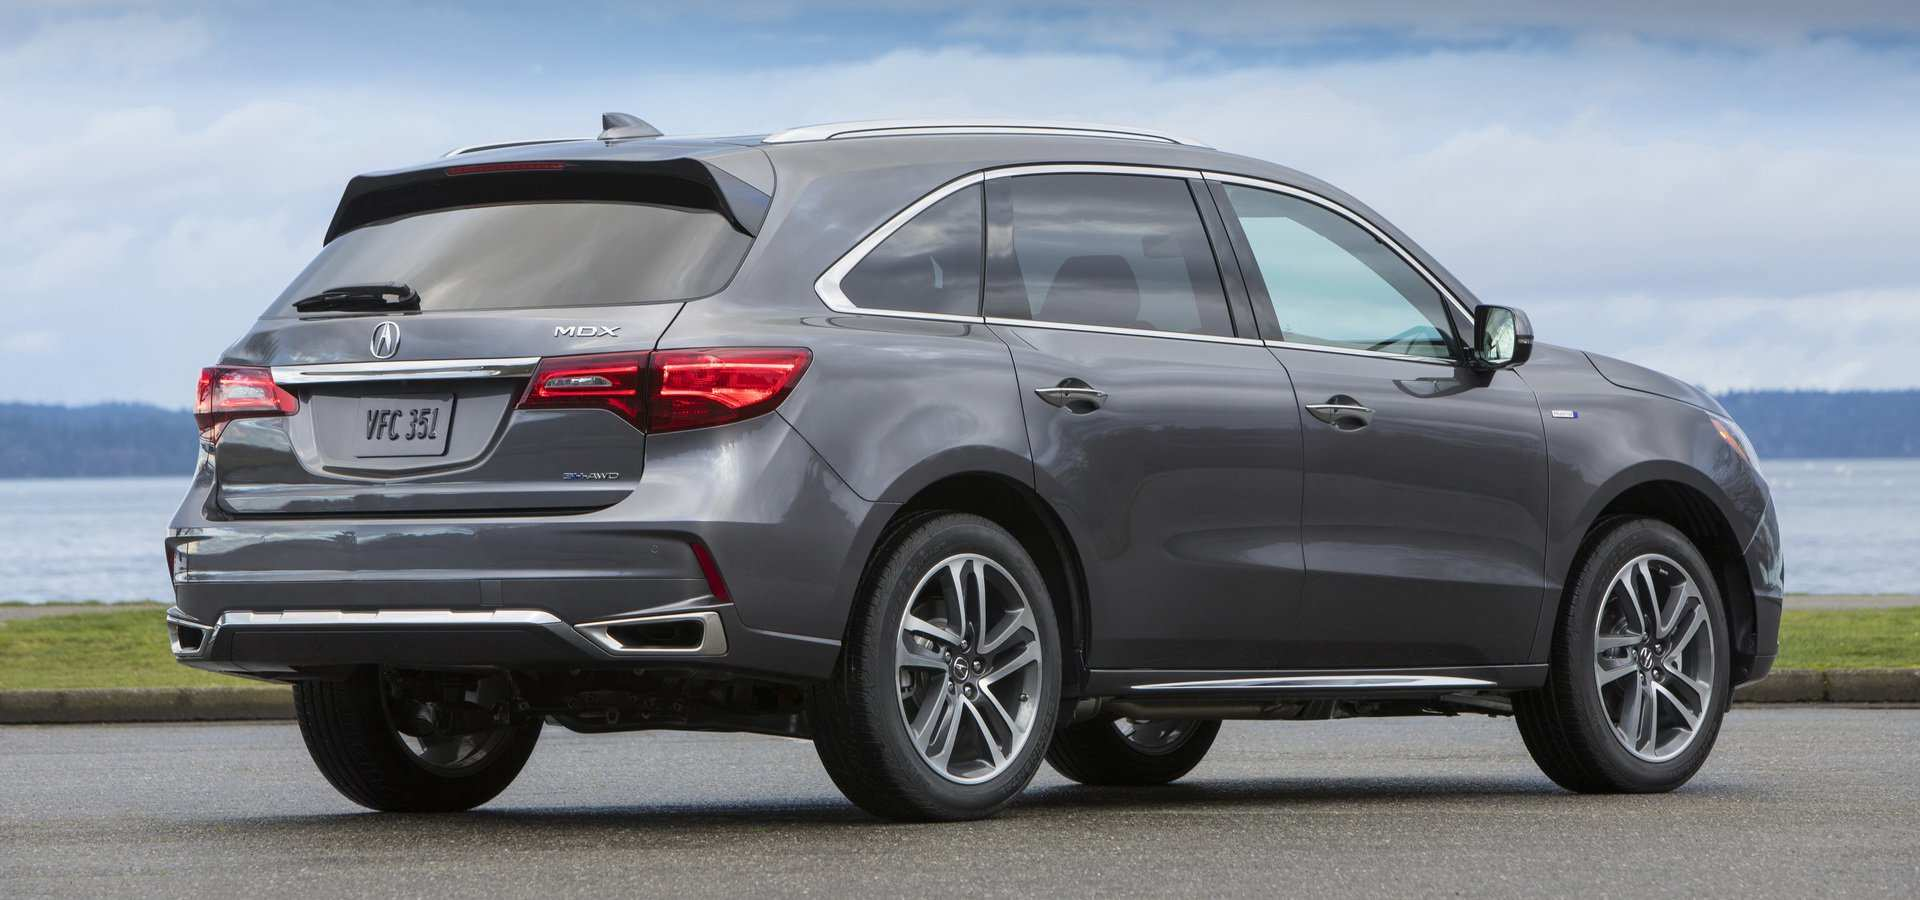 99 The New Acura Mdx 2020 Release Date with New Acura Mdx 2020